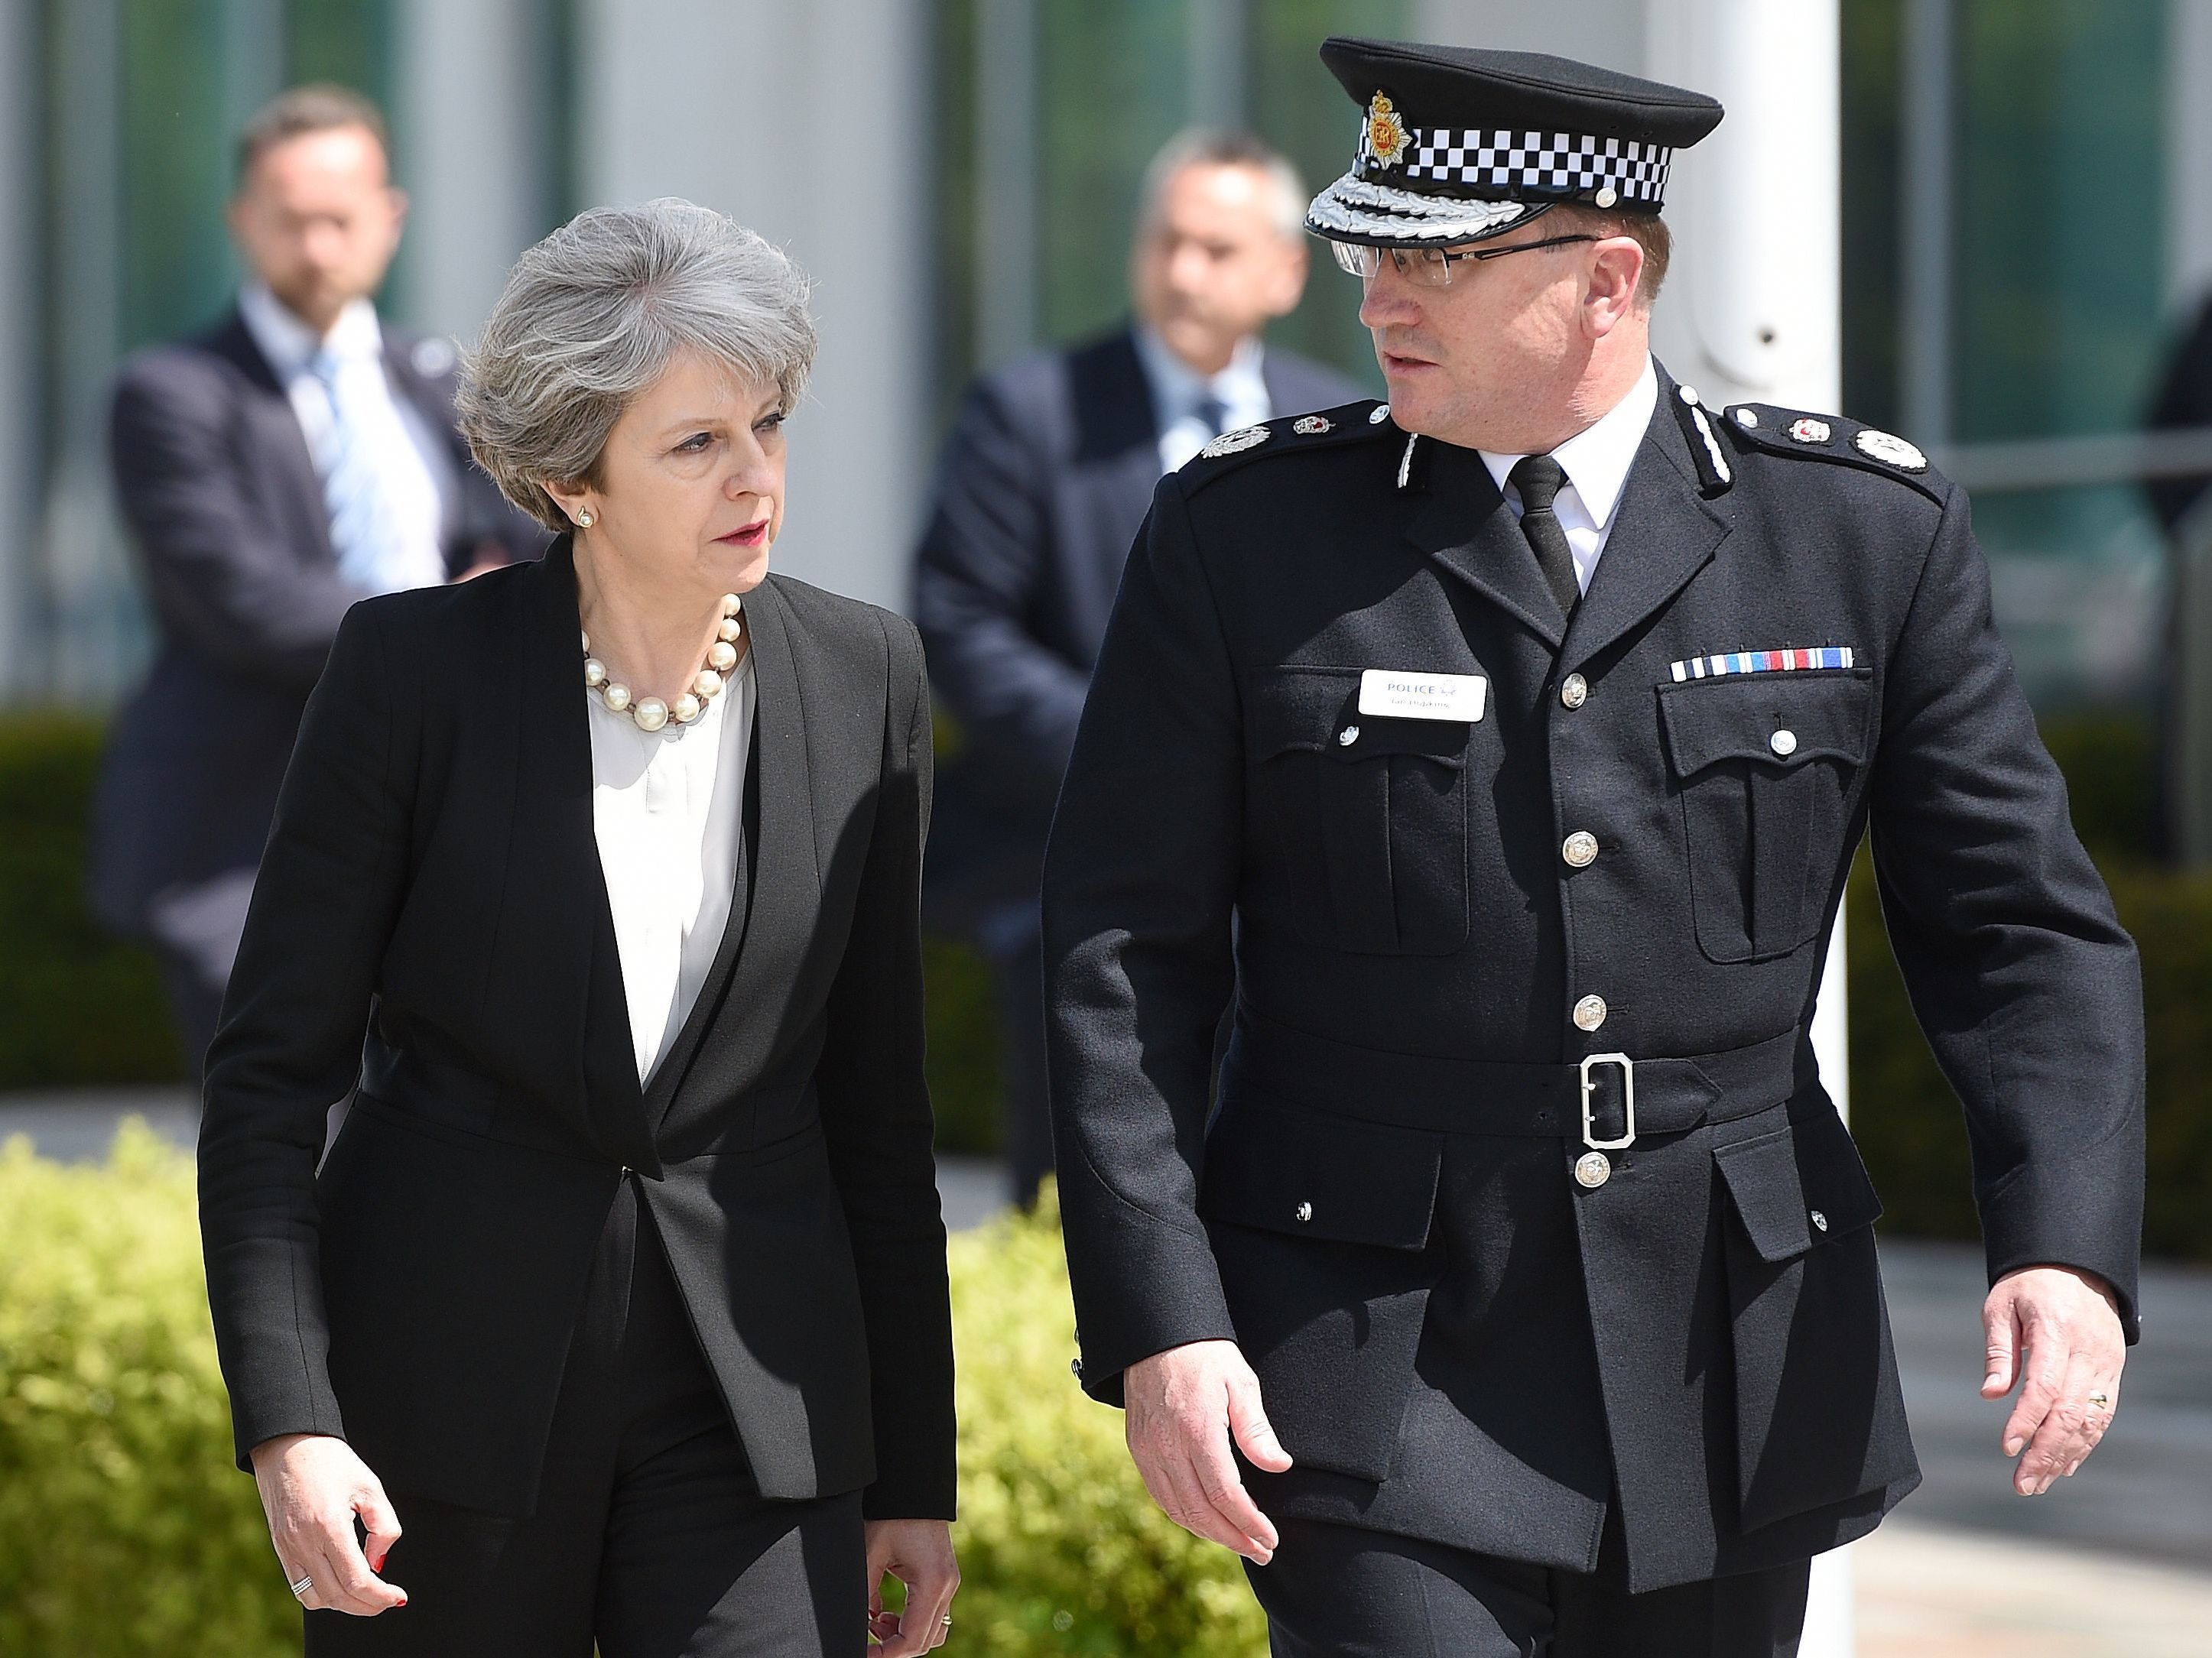 Britain's Prime Minister Theresa May walks with Chief Constable of Greater Manchester Police Ian Hopkins as she arrives at the force's headquarters in Manchester on Tuesday following a deadly terrorist attack the night before. (Oli Scarff/AFP/Getty Images)